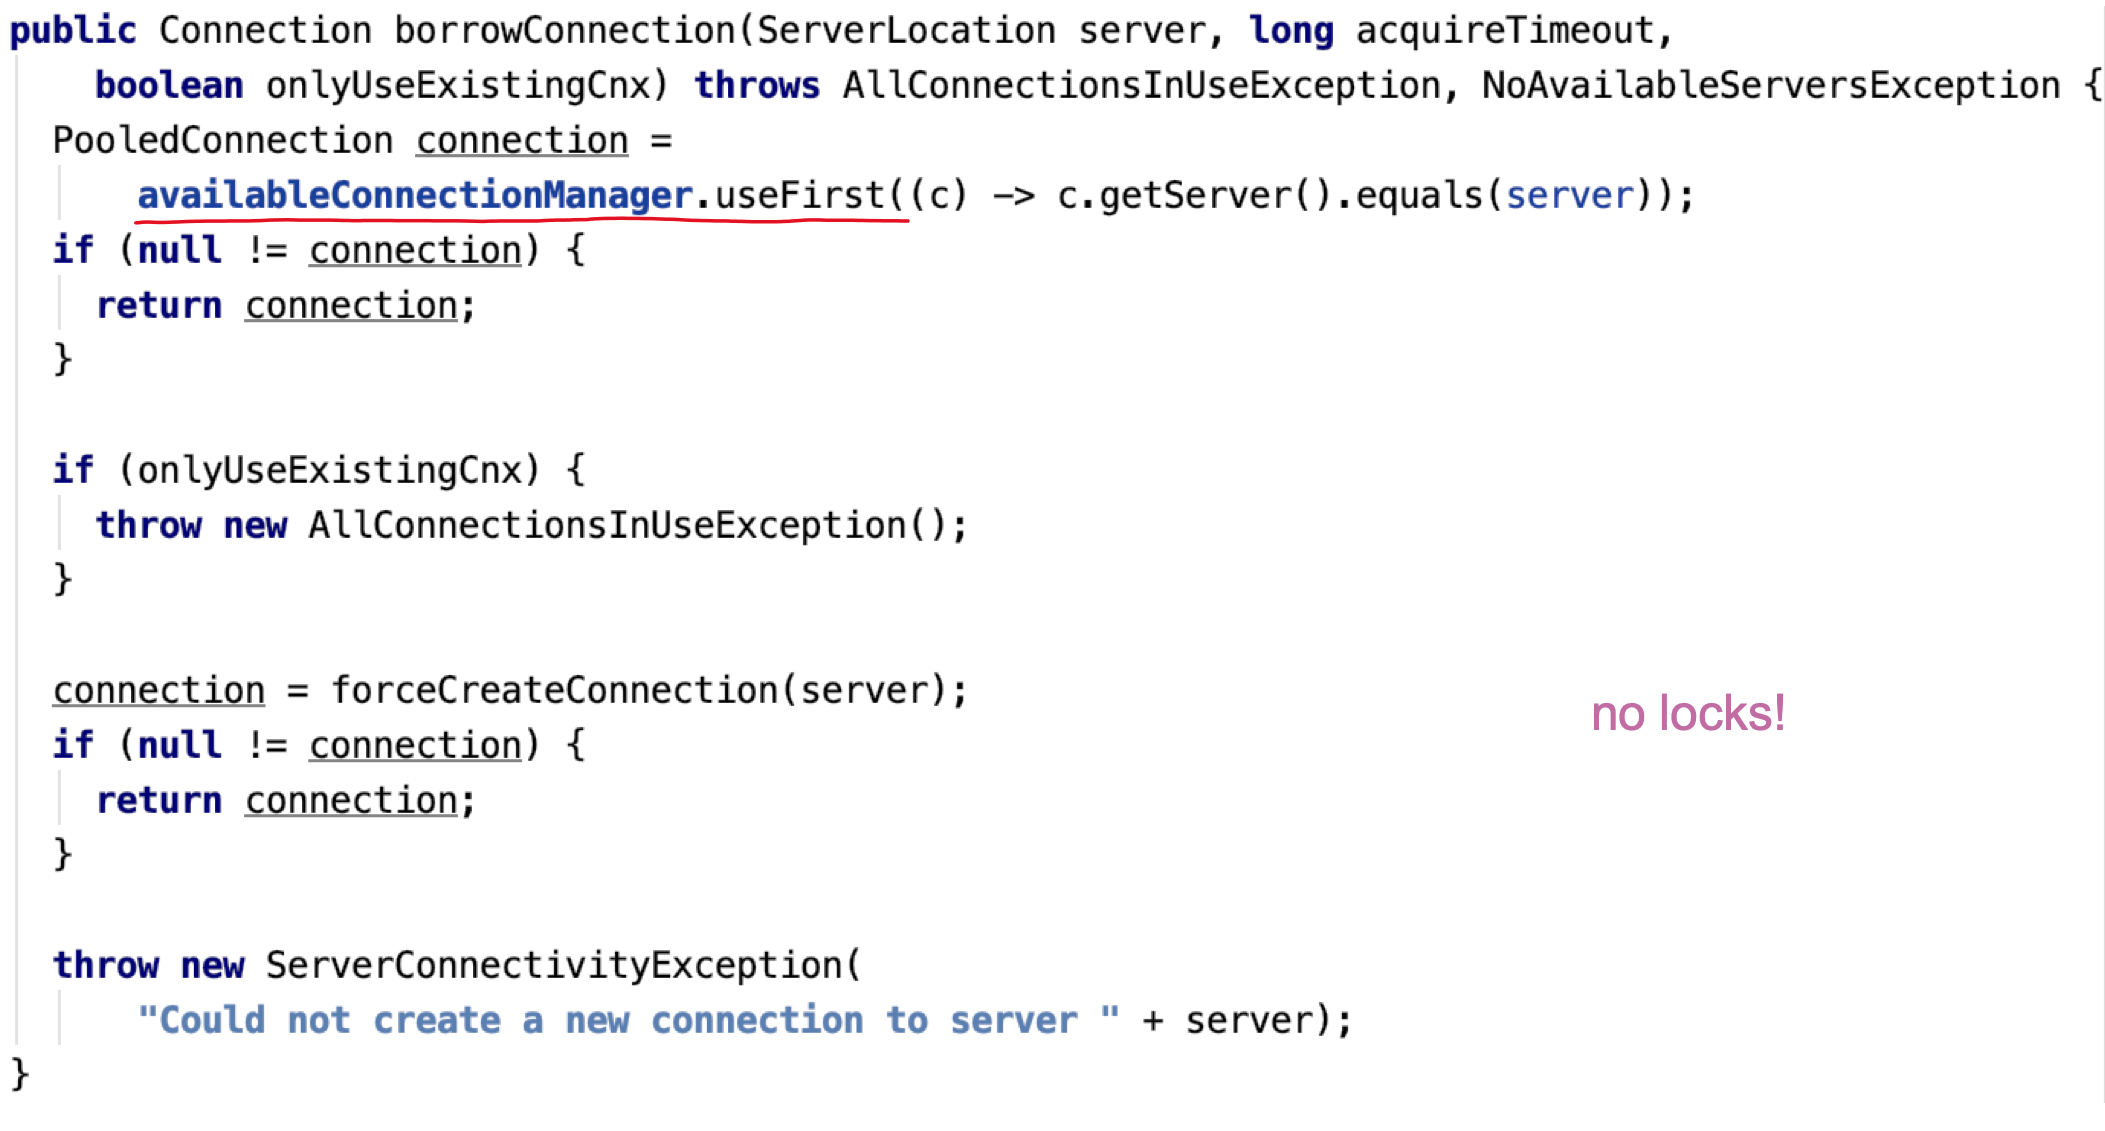 Figure 8: Refactored borrowConnection without locks - Code snippet showing that borrowConnection uses no locks, instead calling useFirst() on the AvailableConnectionManager.